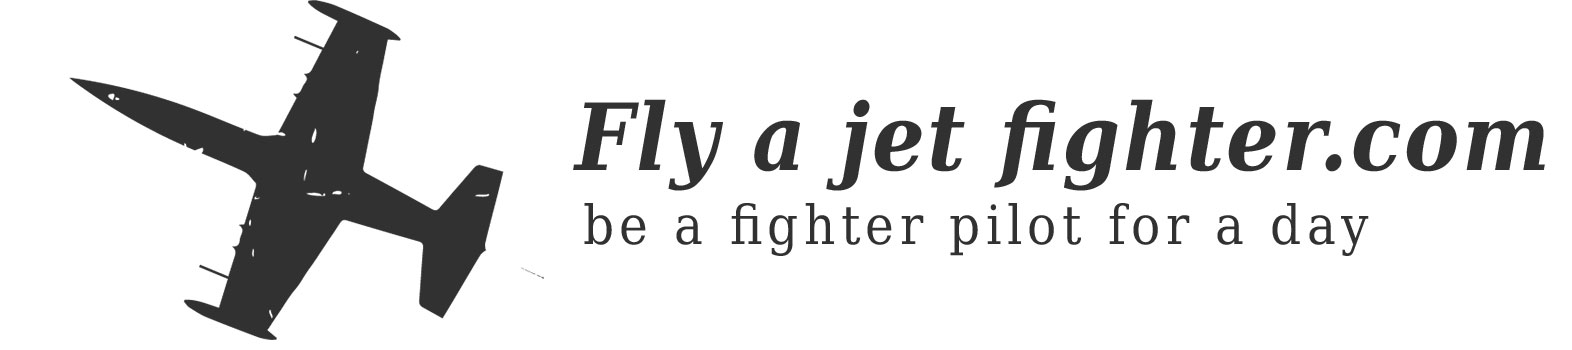 flyajetfighter logo